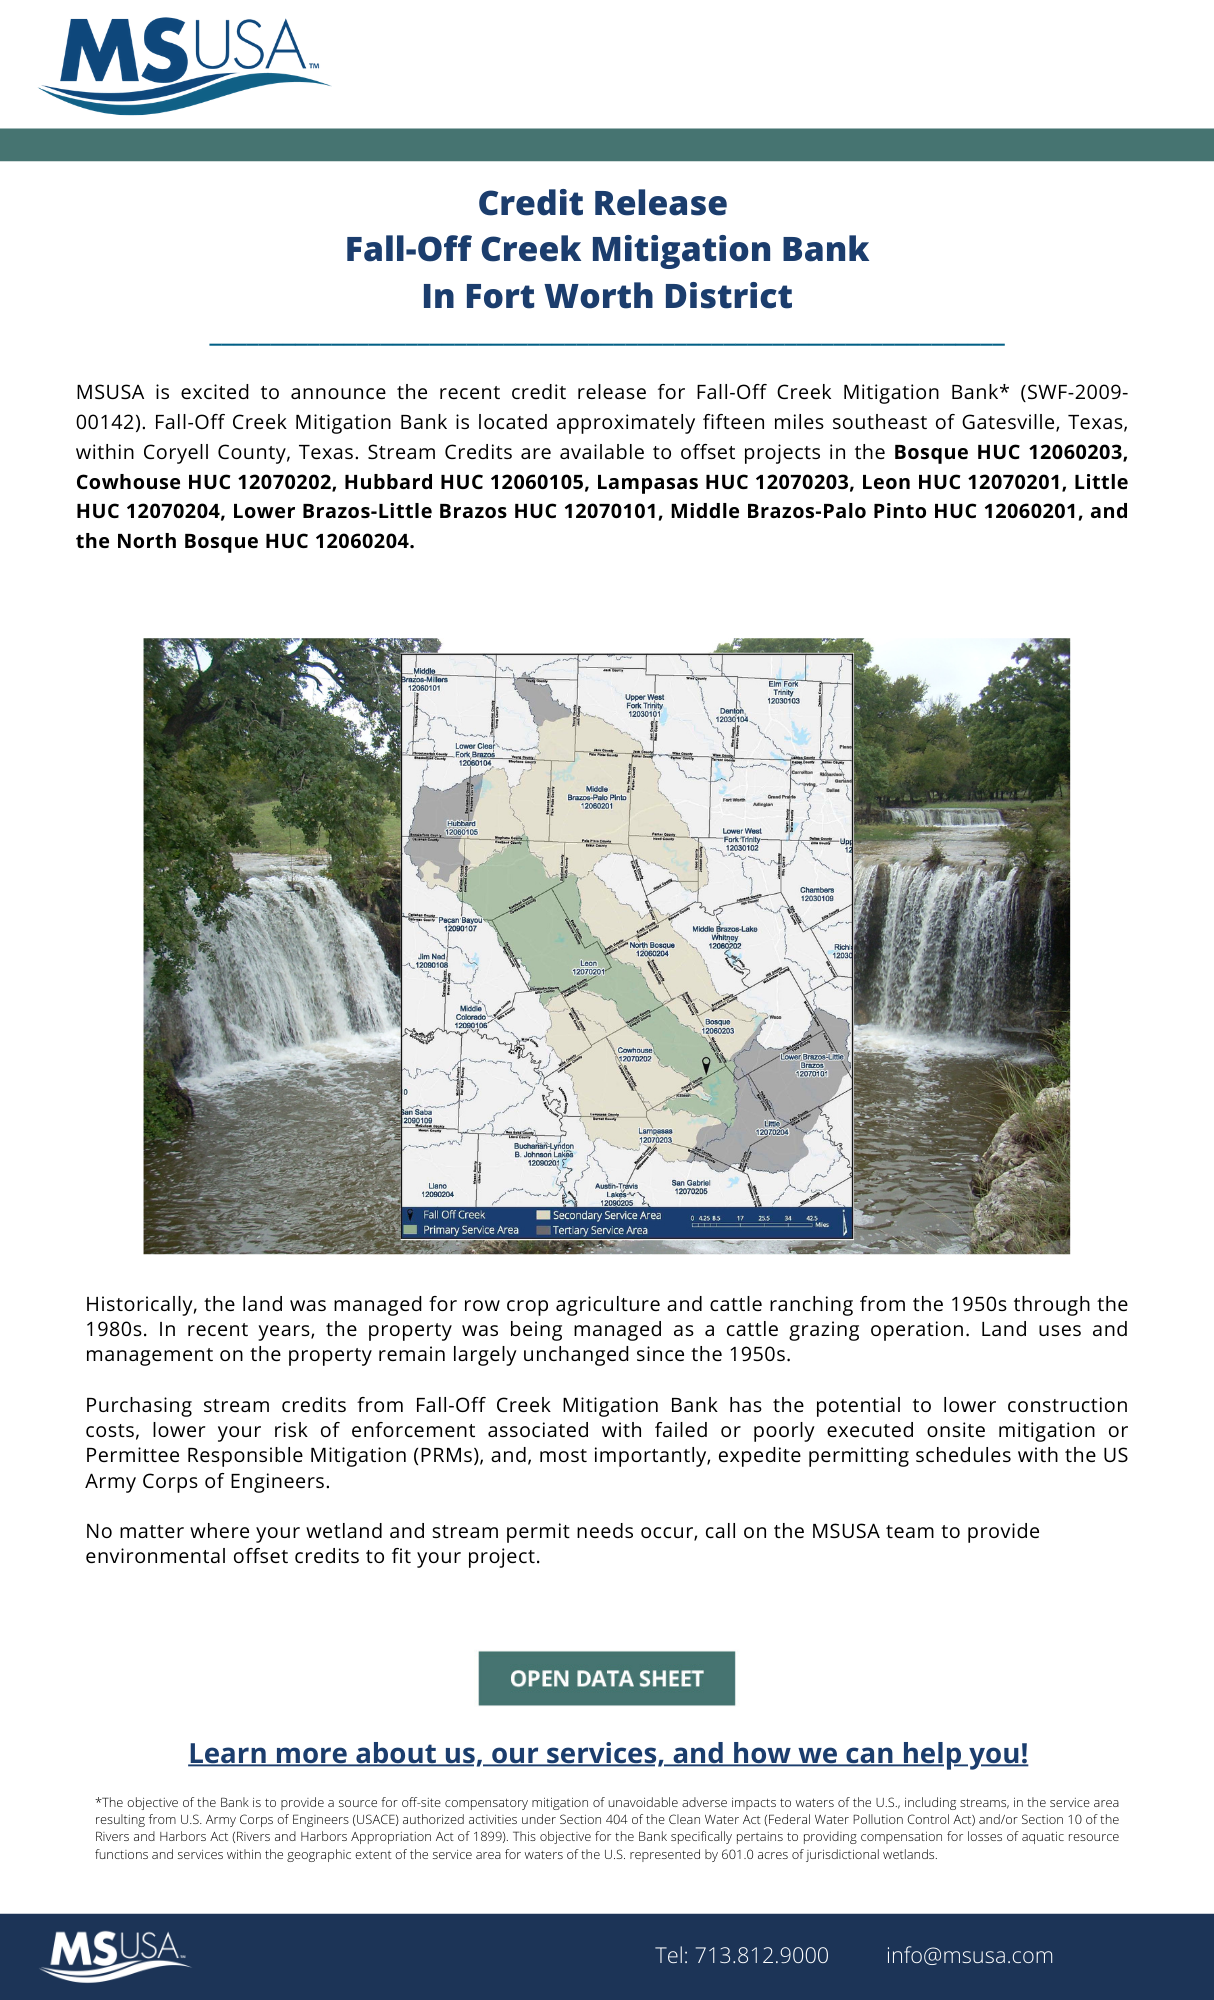 Credit Release Announcement – Fall-Off Creek Mitigation Bank, located in Coryell County, Texas, has received a credit release on June 1, 2021.